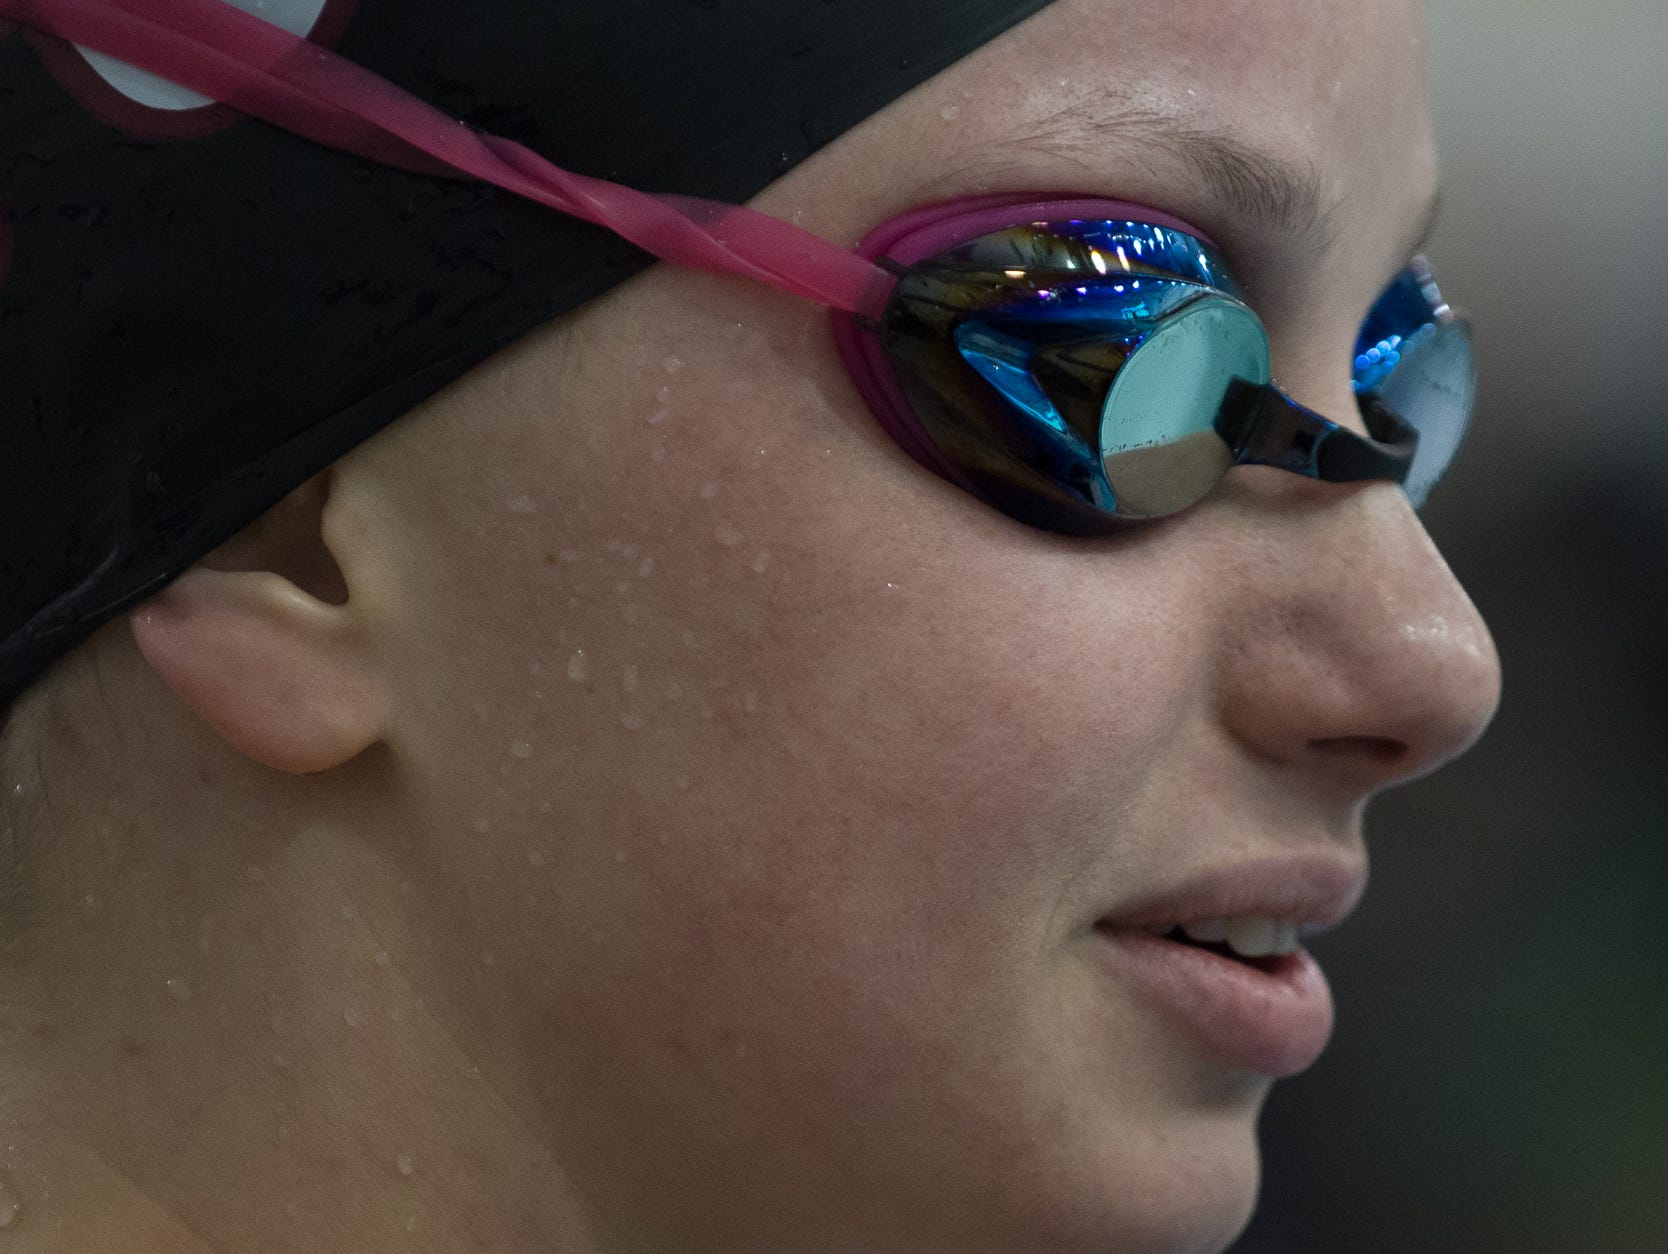 Appoquinimink's Josephine Marsh prepares to compete in the 100 yard butterfly final at the girl's DIAA swimming and diving championships at the University of Delaware.